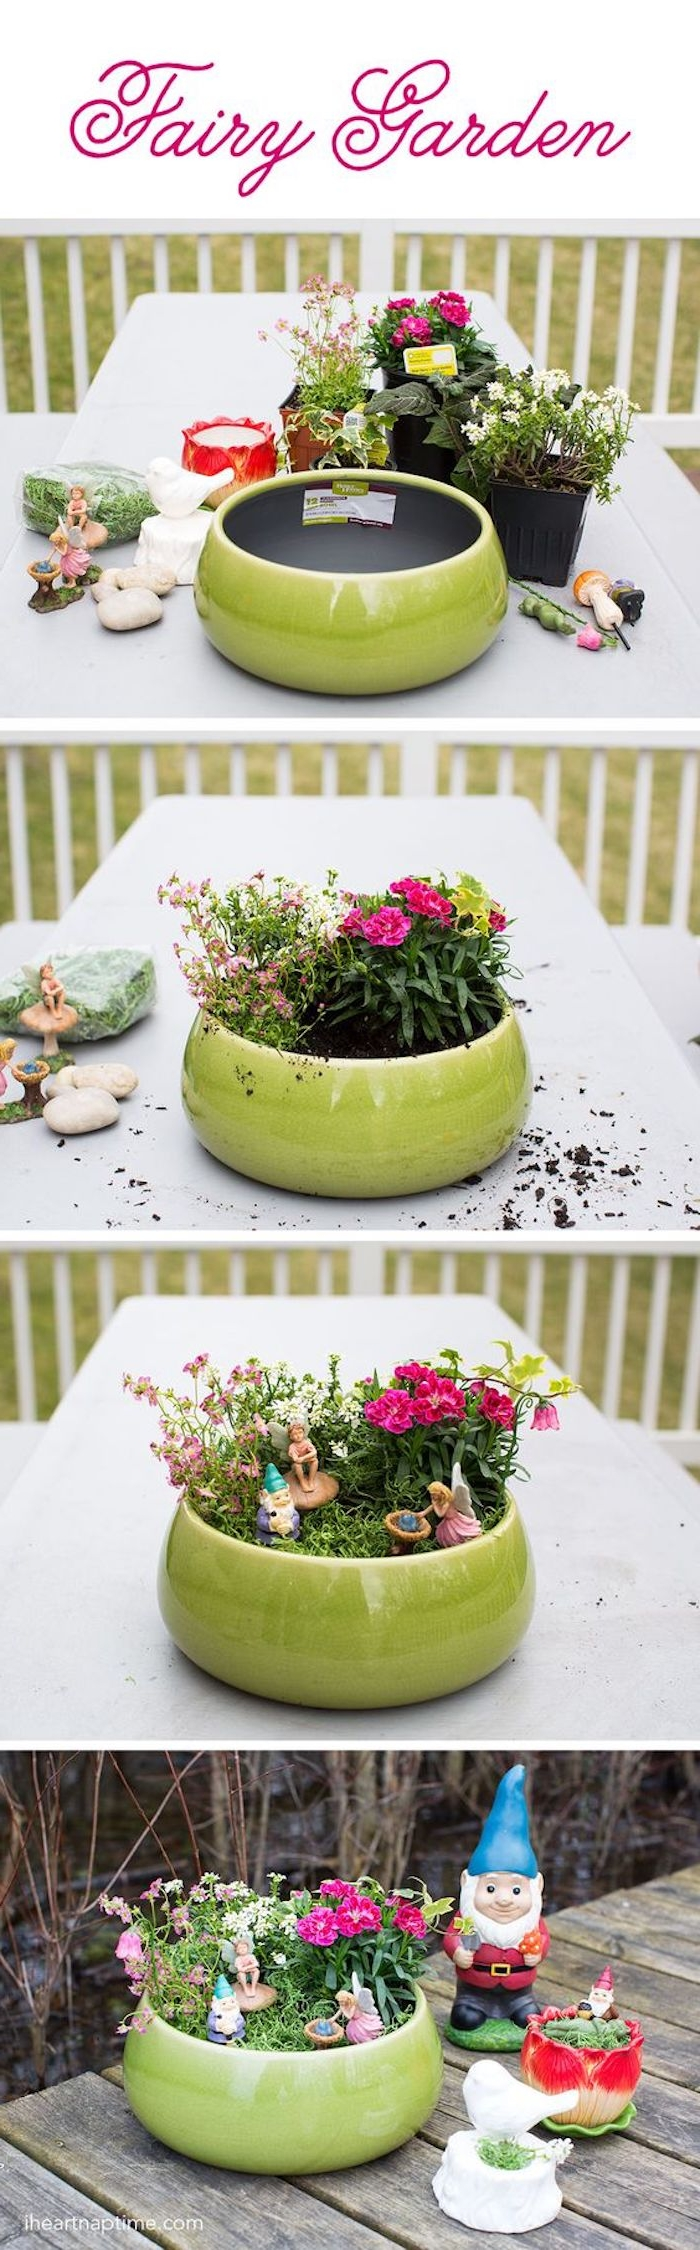 four photos explaining how to make a fairy garden, large green planting bowl, several potted plants and materials, arranging the plants, decorating with figurnines